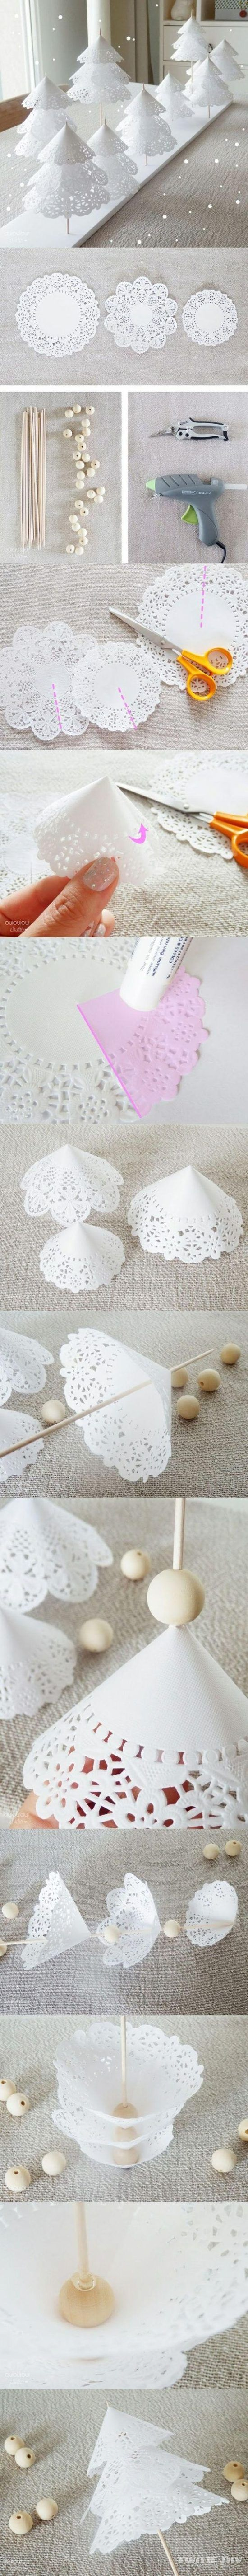 Best Diy Doily Paper Christmas Tree Tutorial With Video | The WHOot